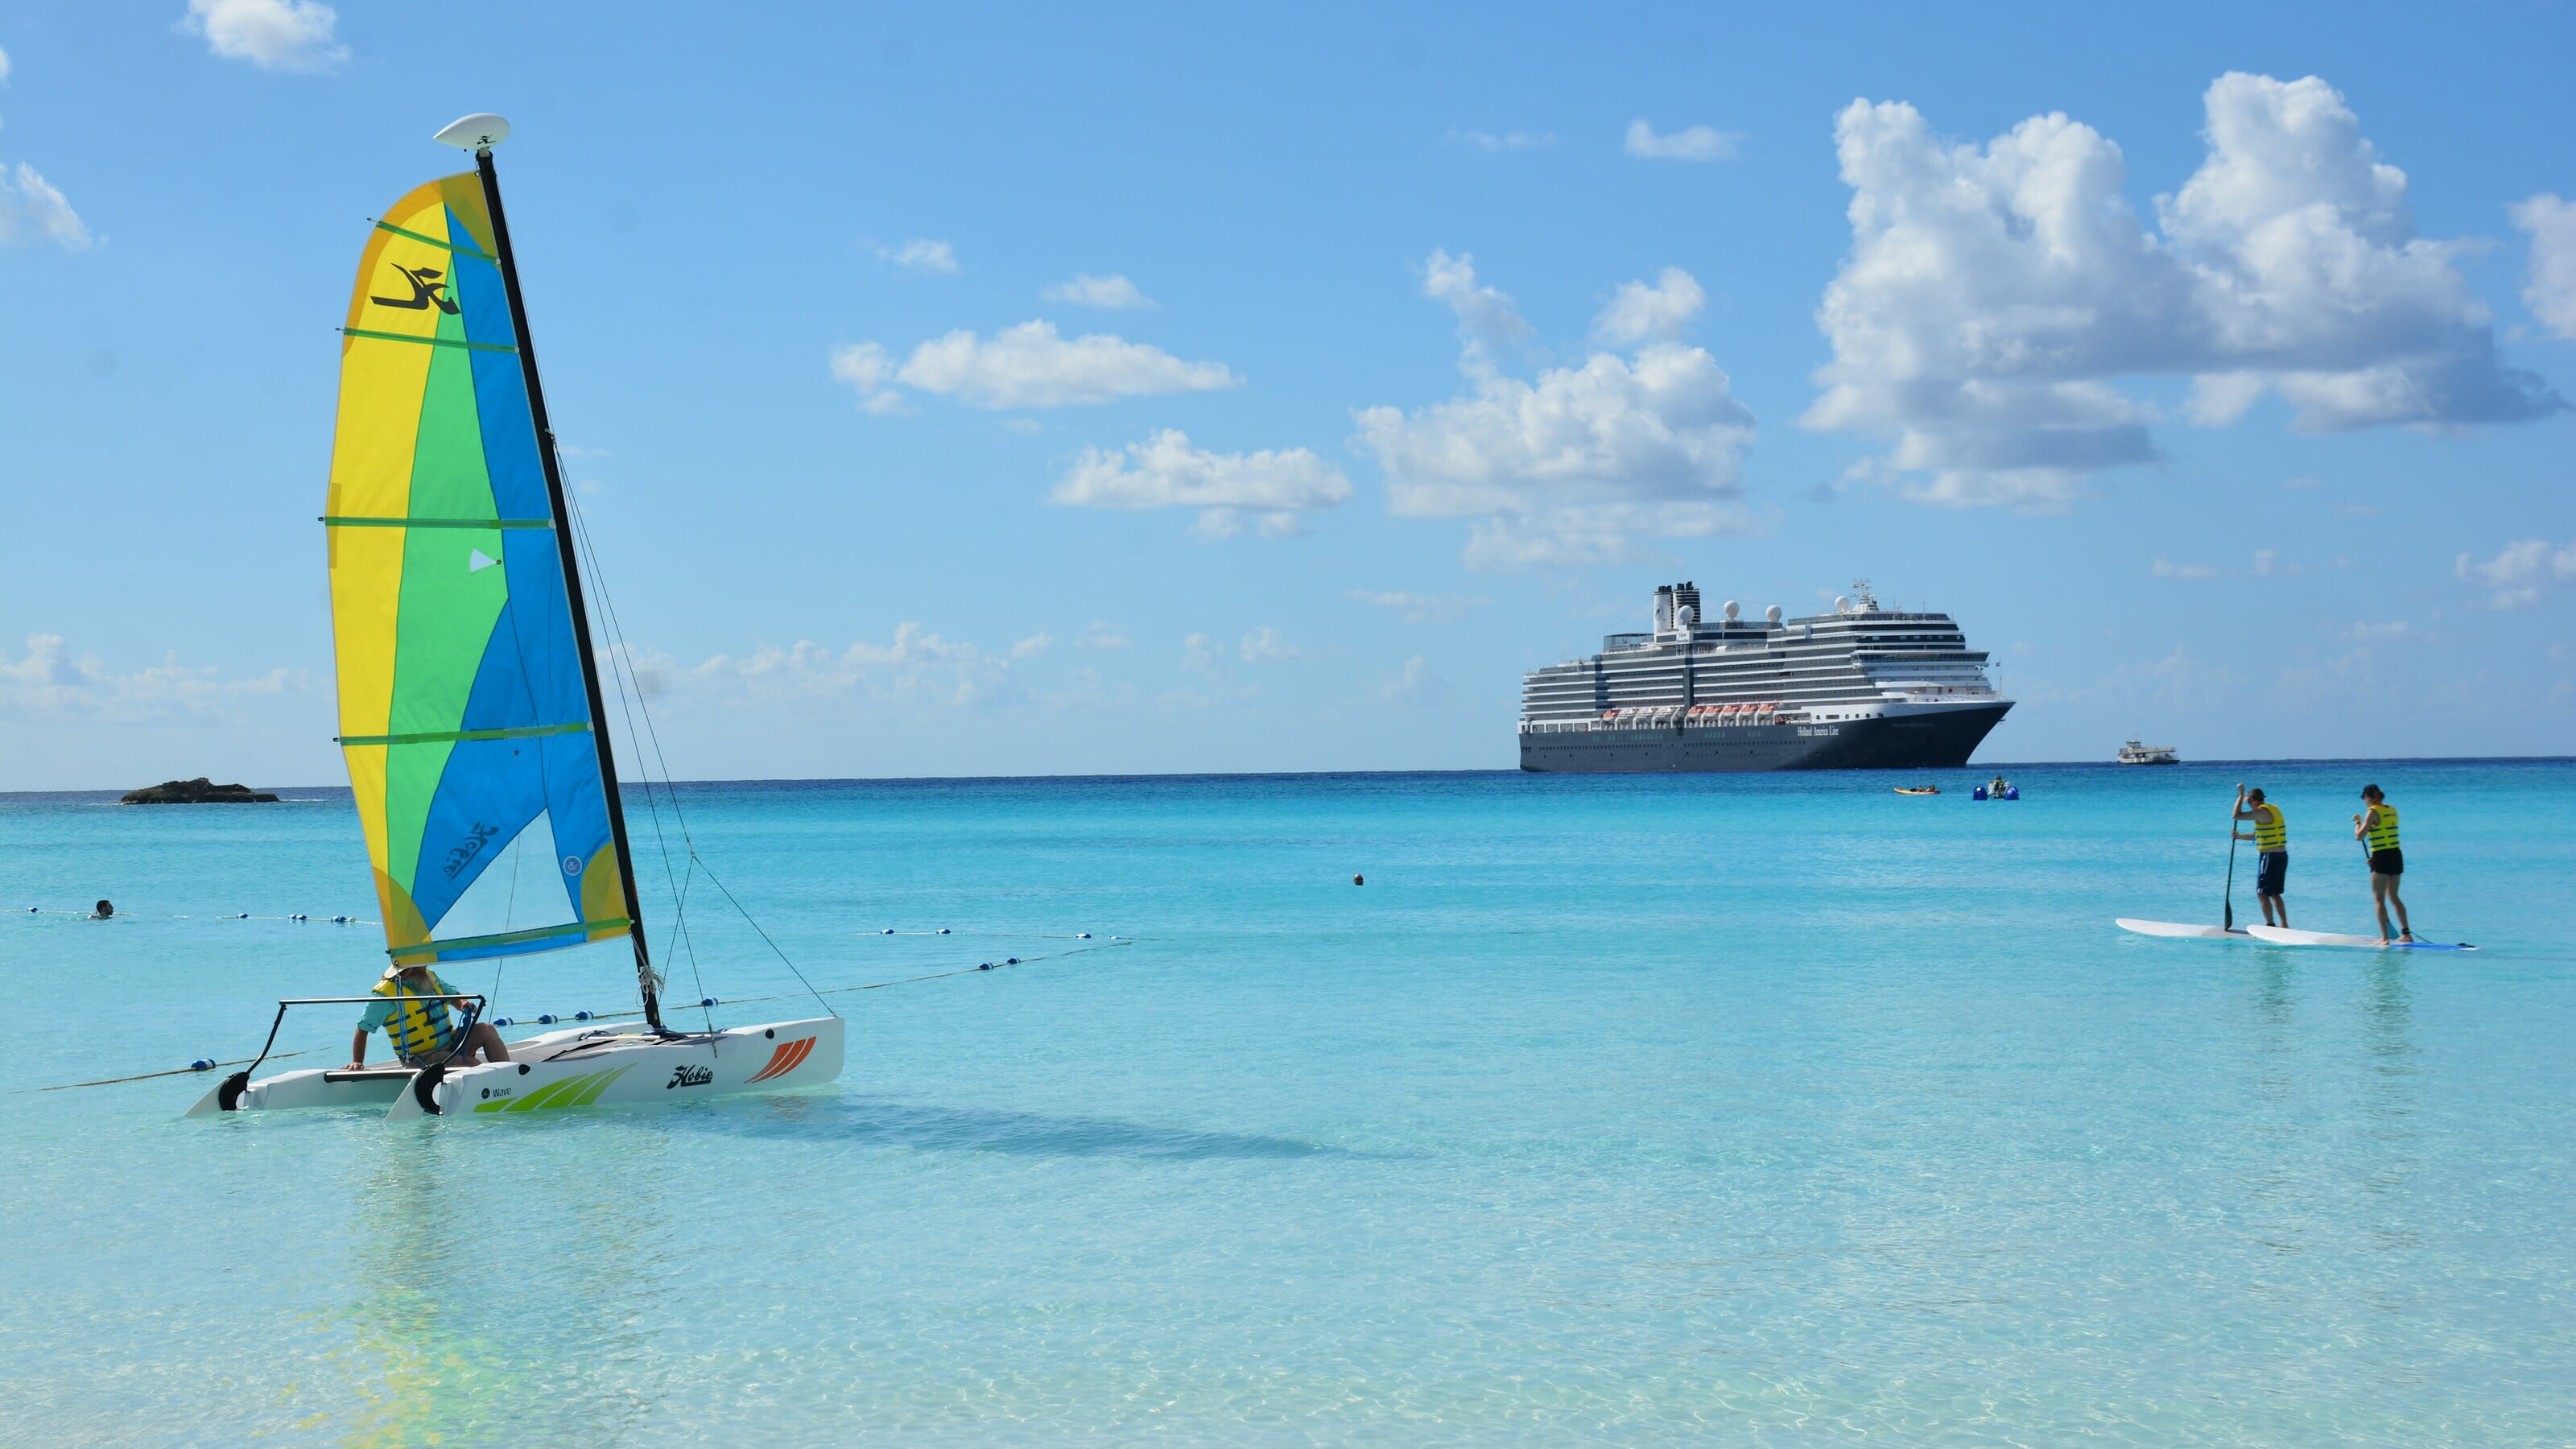 Water sports at Half Moon Cay